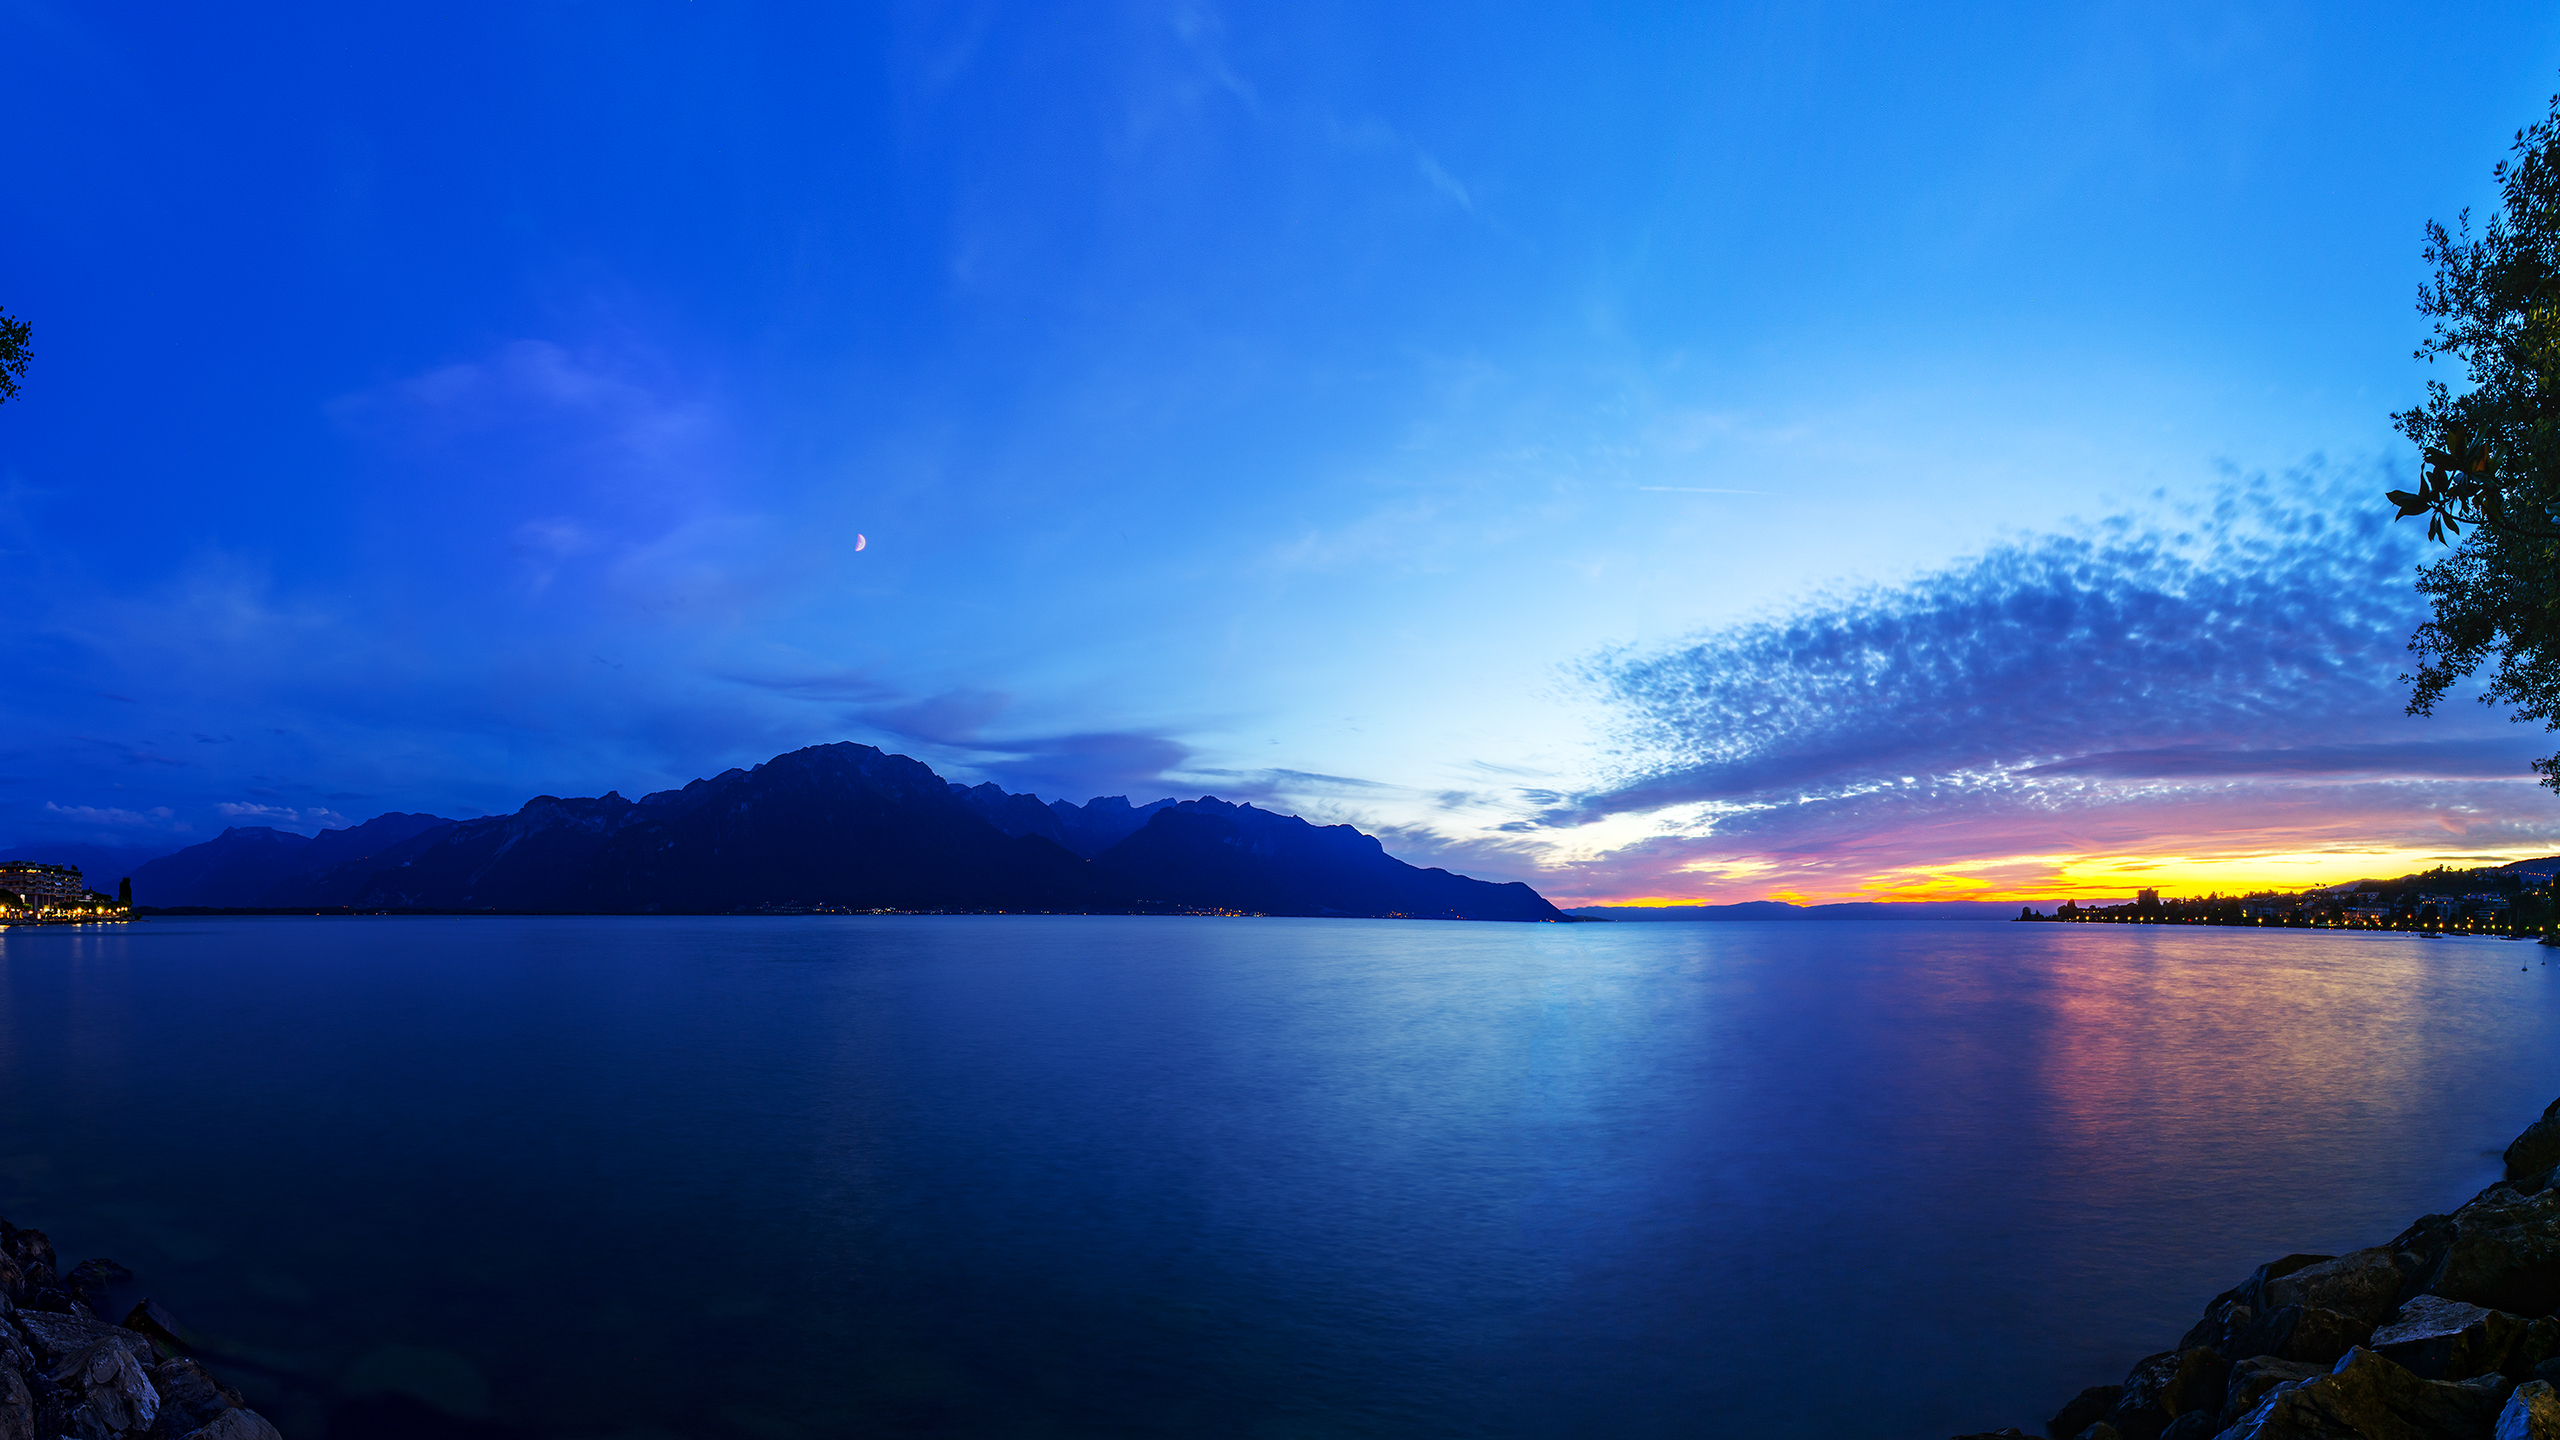 blue_dawn_wallpaper_2560x1440